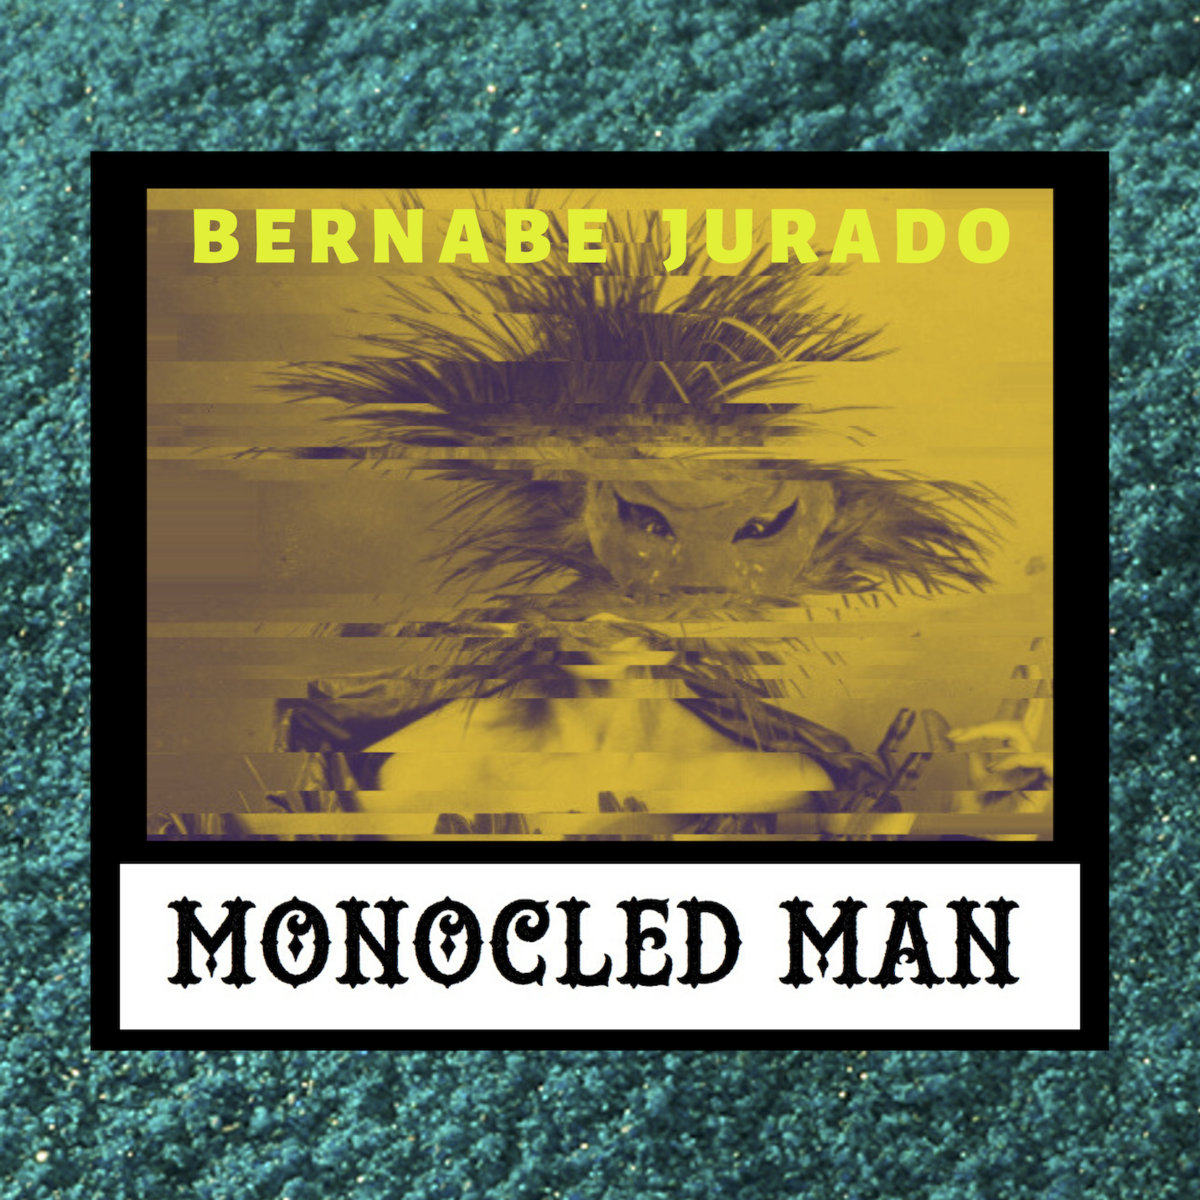 Review of Monocled Man: Bernabe Jurado